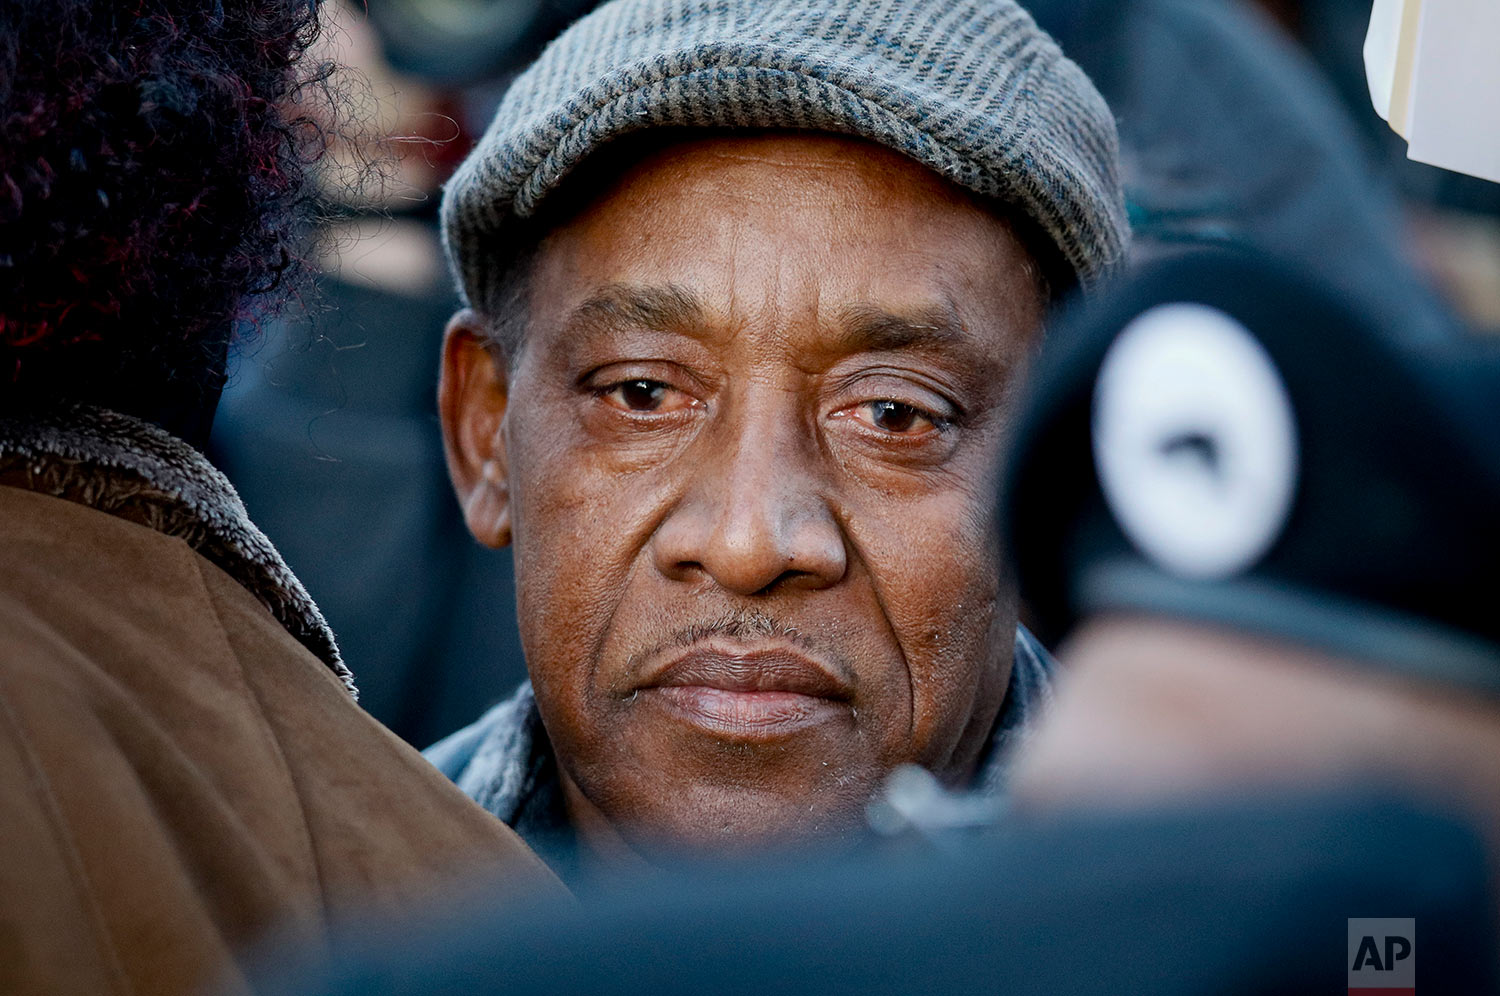 Eric Vassell listens during a rally, Thursday, April 5, 2018, in the Crown Heights neighborhood of Brooklyn, in New York, for his son Saheed Vassell, a 34-year-old welder and father of a teenage son who was fatally shot by New York Police Department officers a day earlier. (AP Photo/Bebeto Matthews)